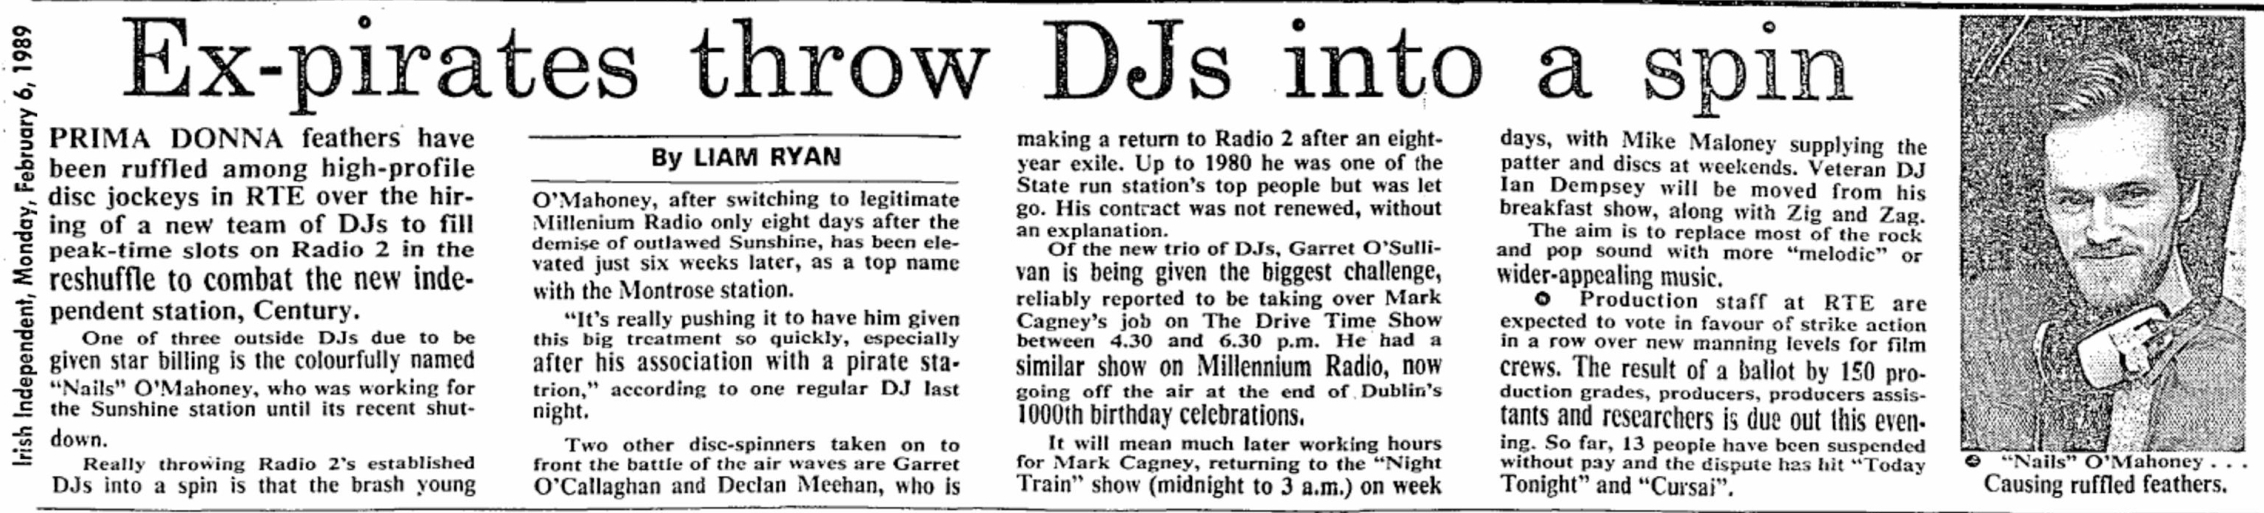 Ex-pirates throw DJs into a spin was a headline from The Irish Independent dated February 6th 1989.